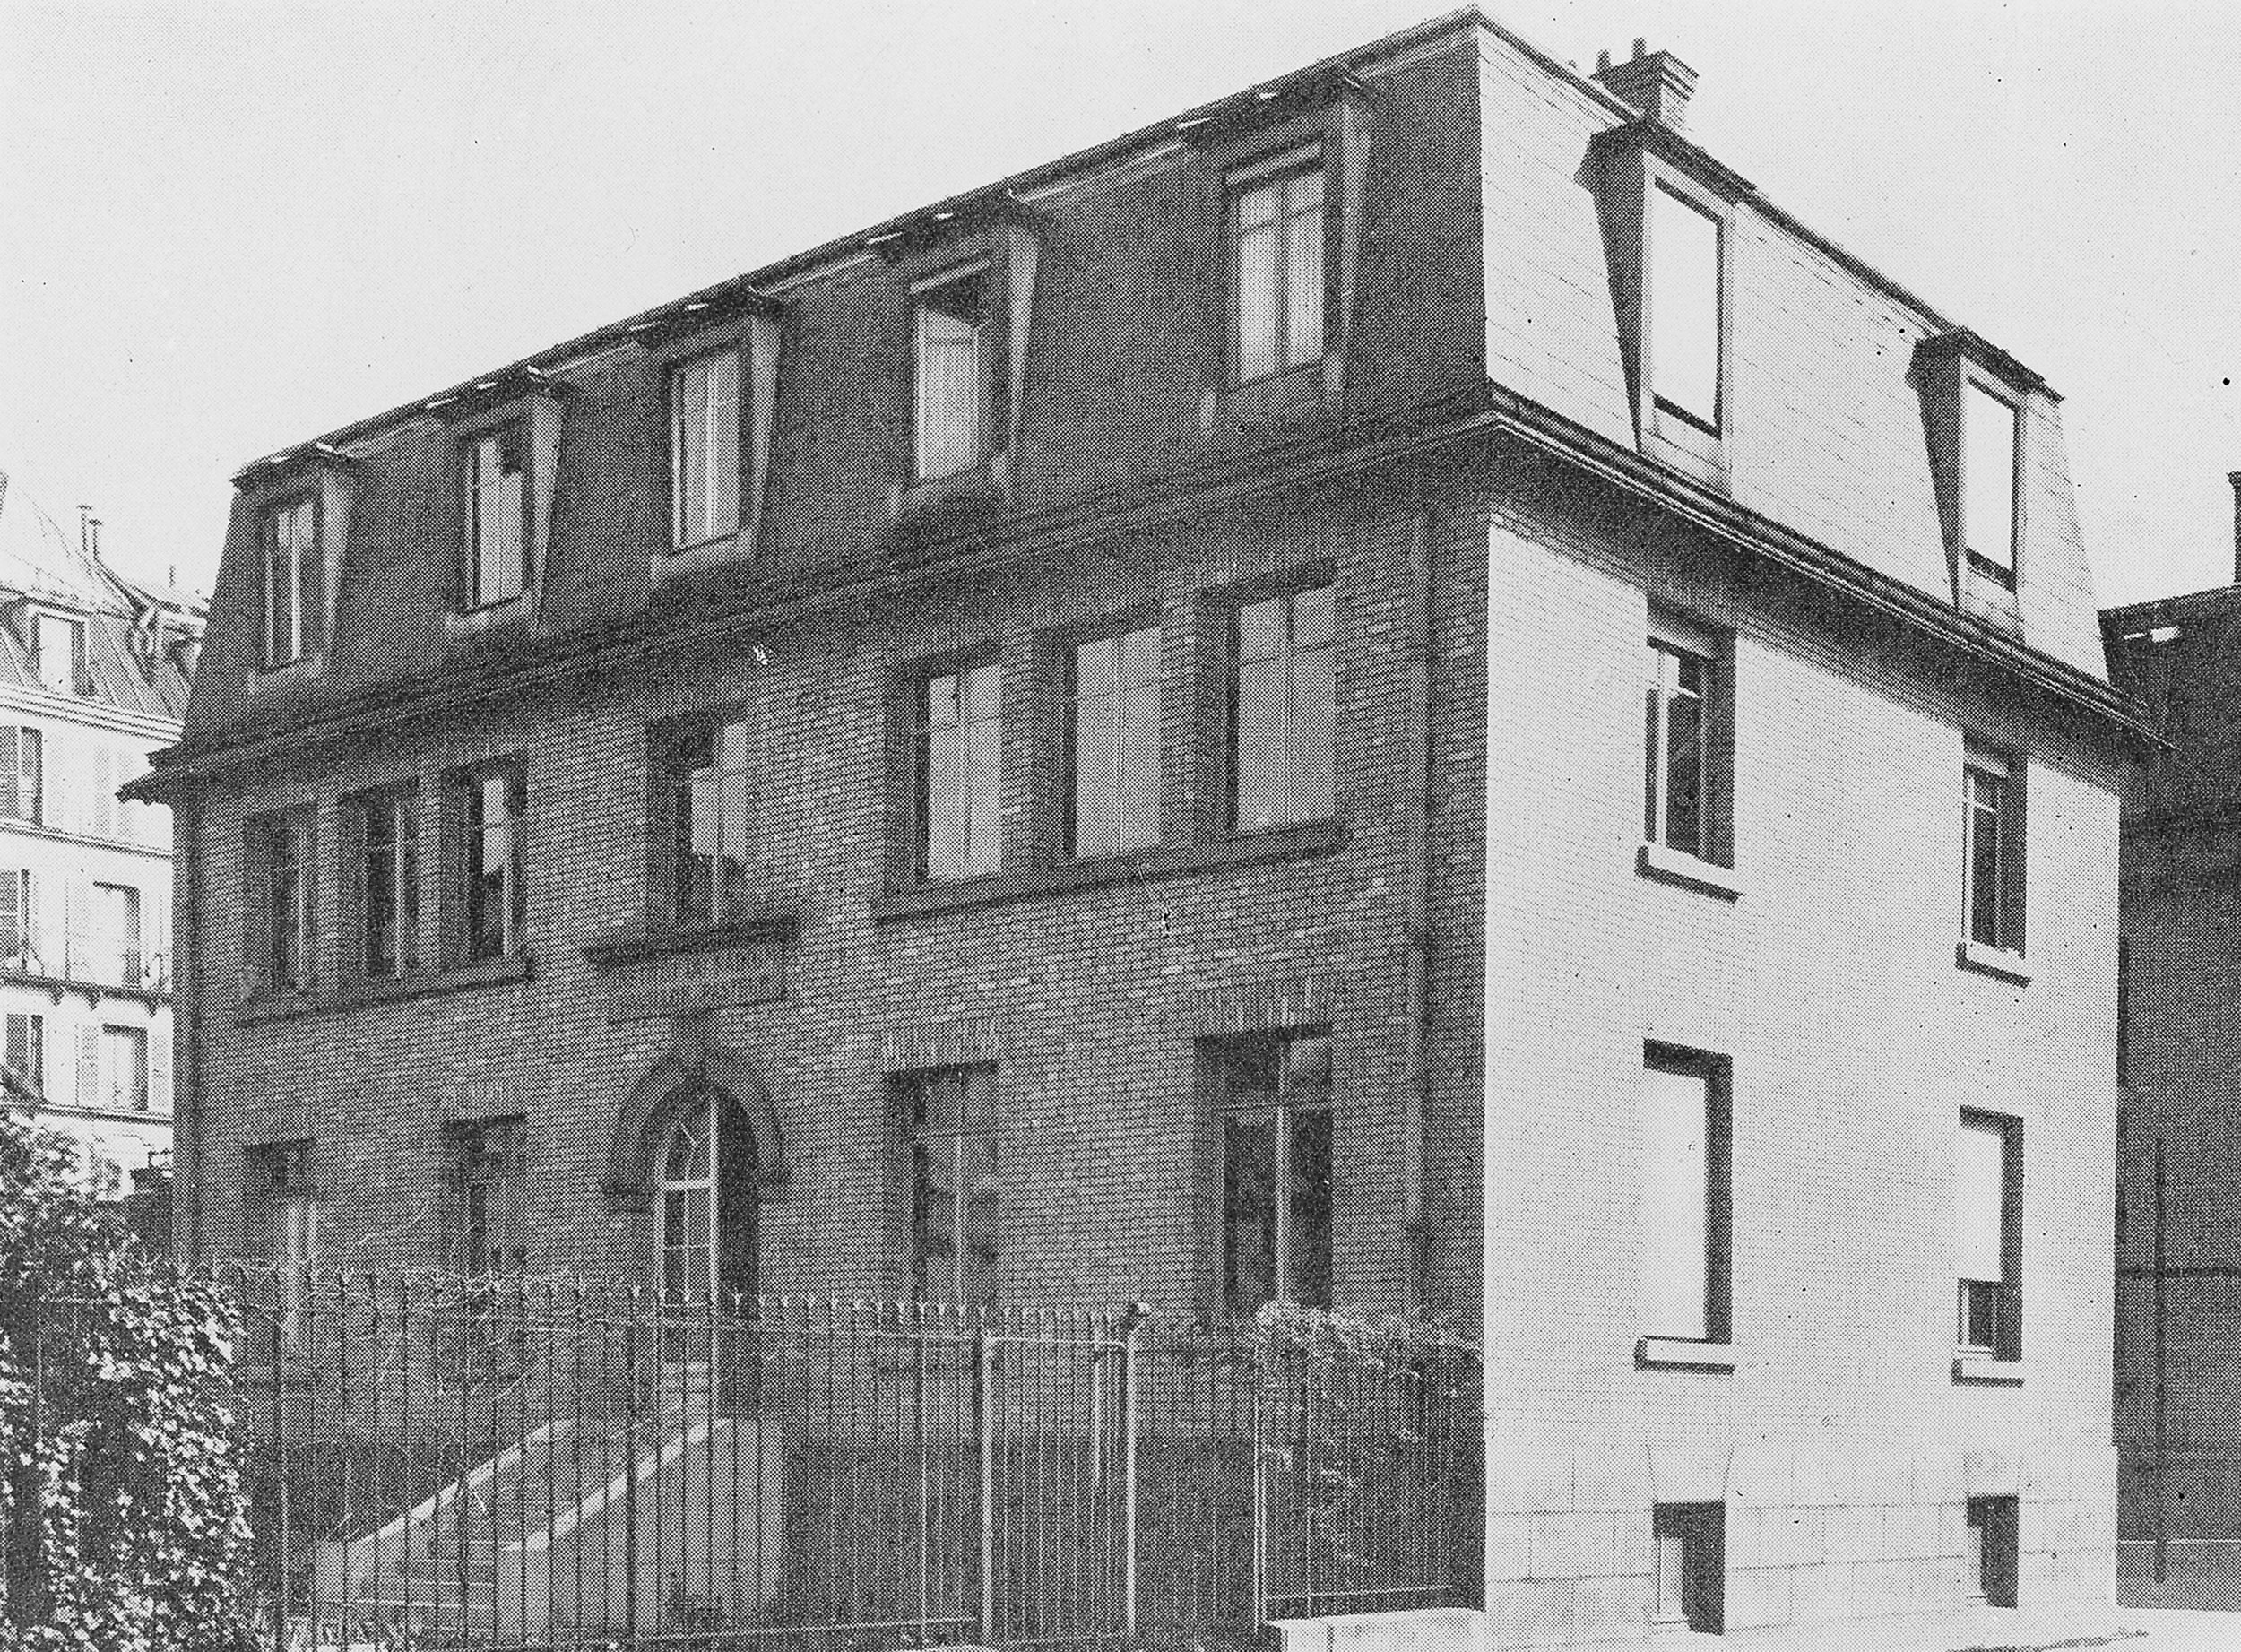 The Radium Institute--home to the research of both Marie Curie and Irène Joliot-Curie...and the dozen or so women who worked with them, including Marguerite Perey (Image courtesy of The Radium Institute, Paris).